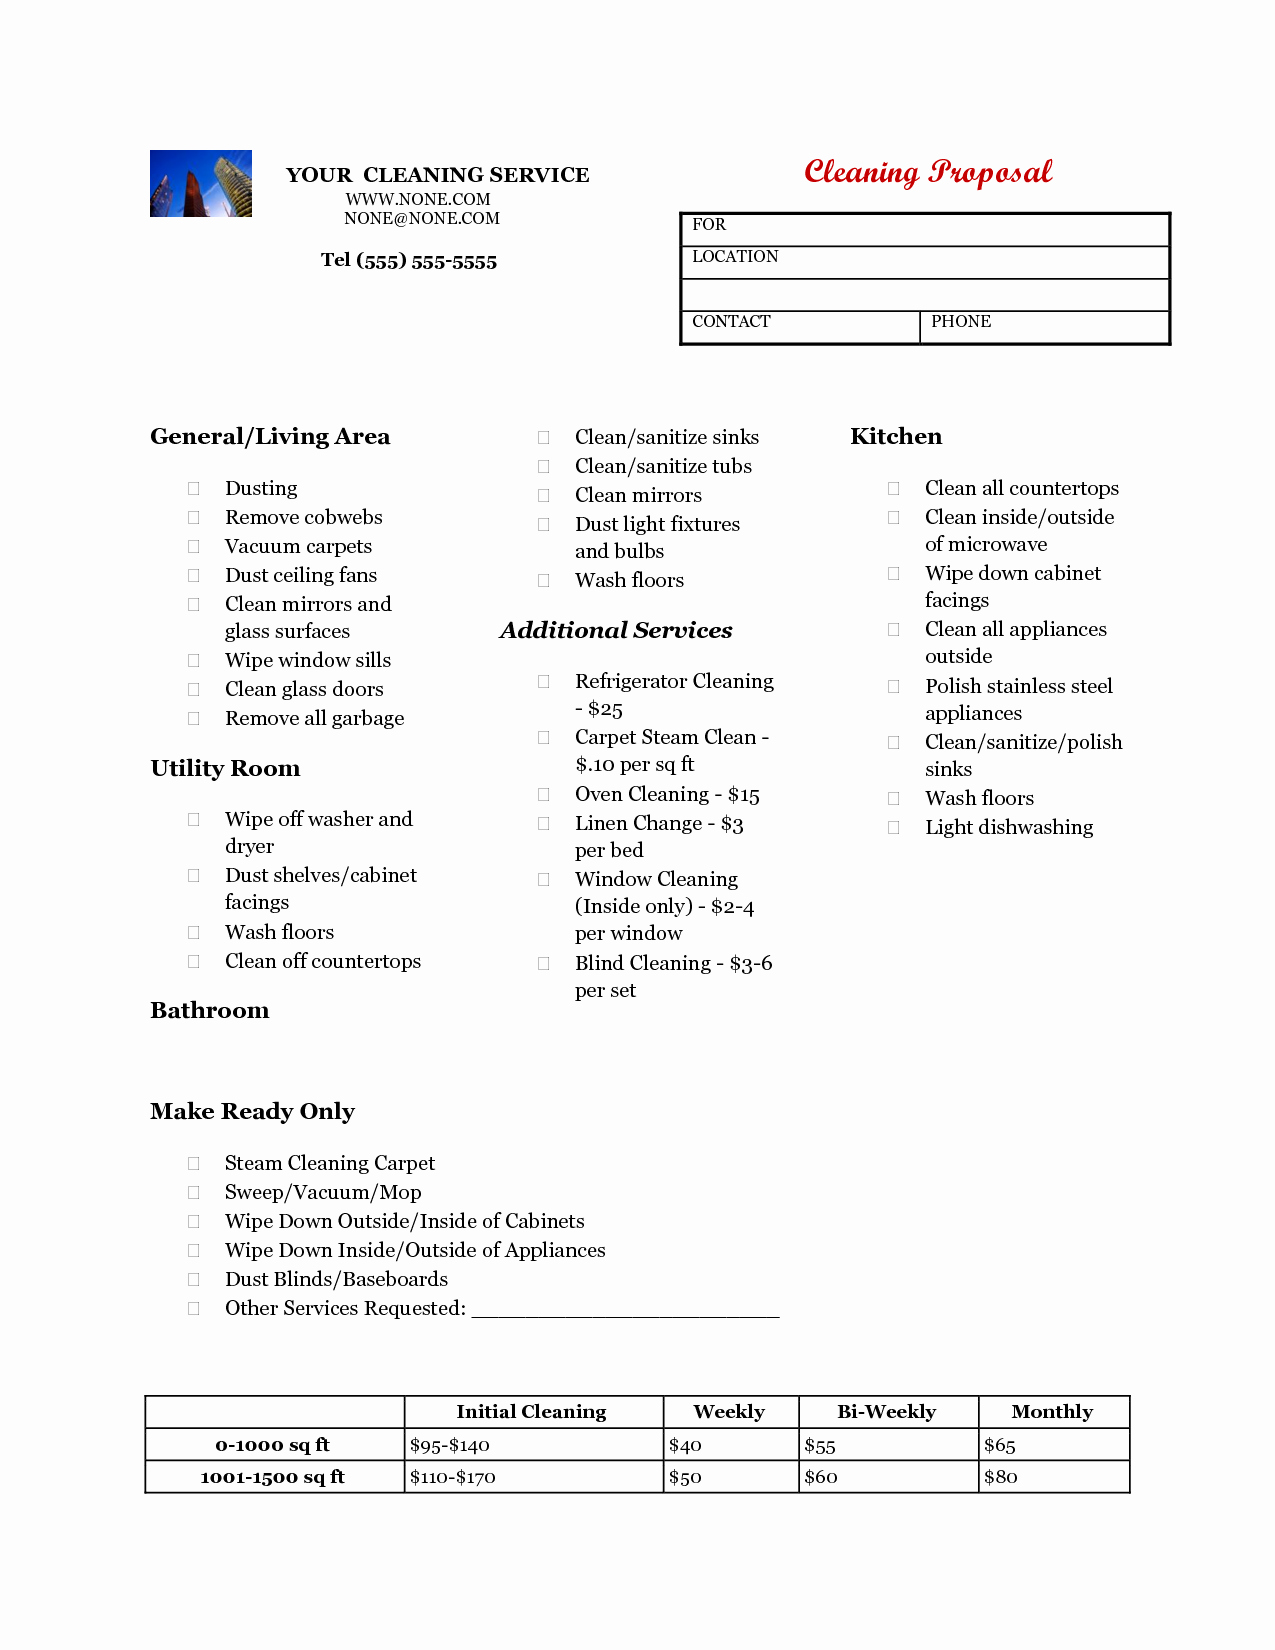 Cleaning Service Proposal Template Awesome Cleaning Business Proposal Template Free